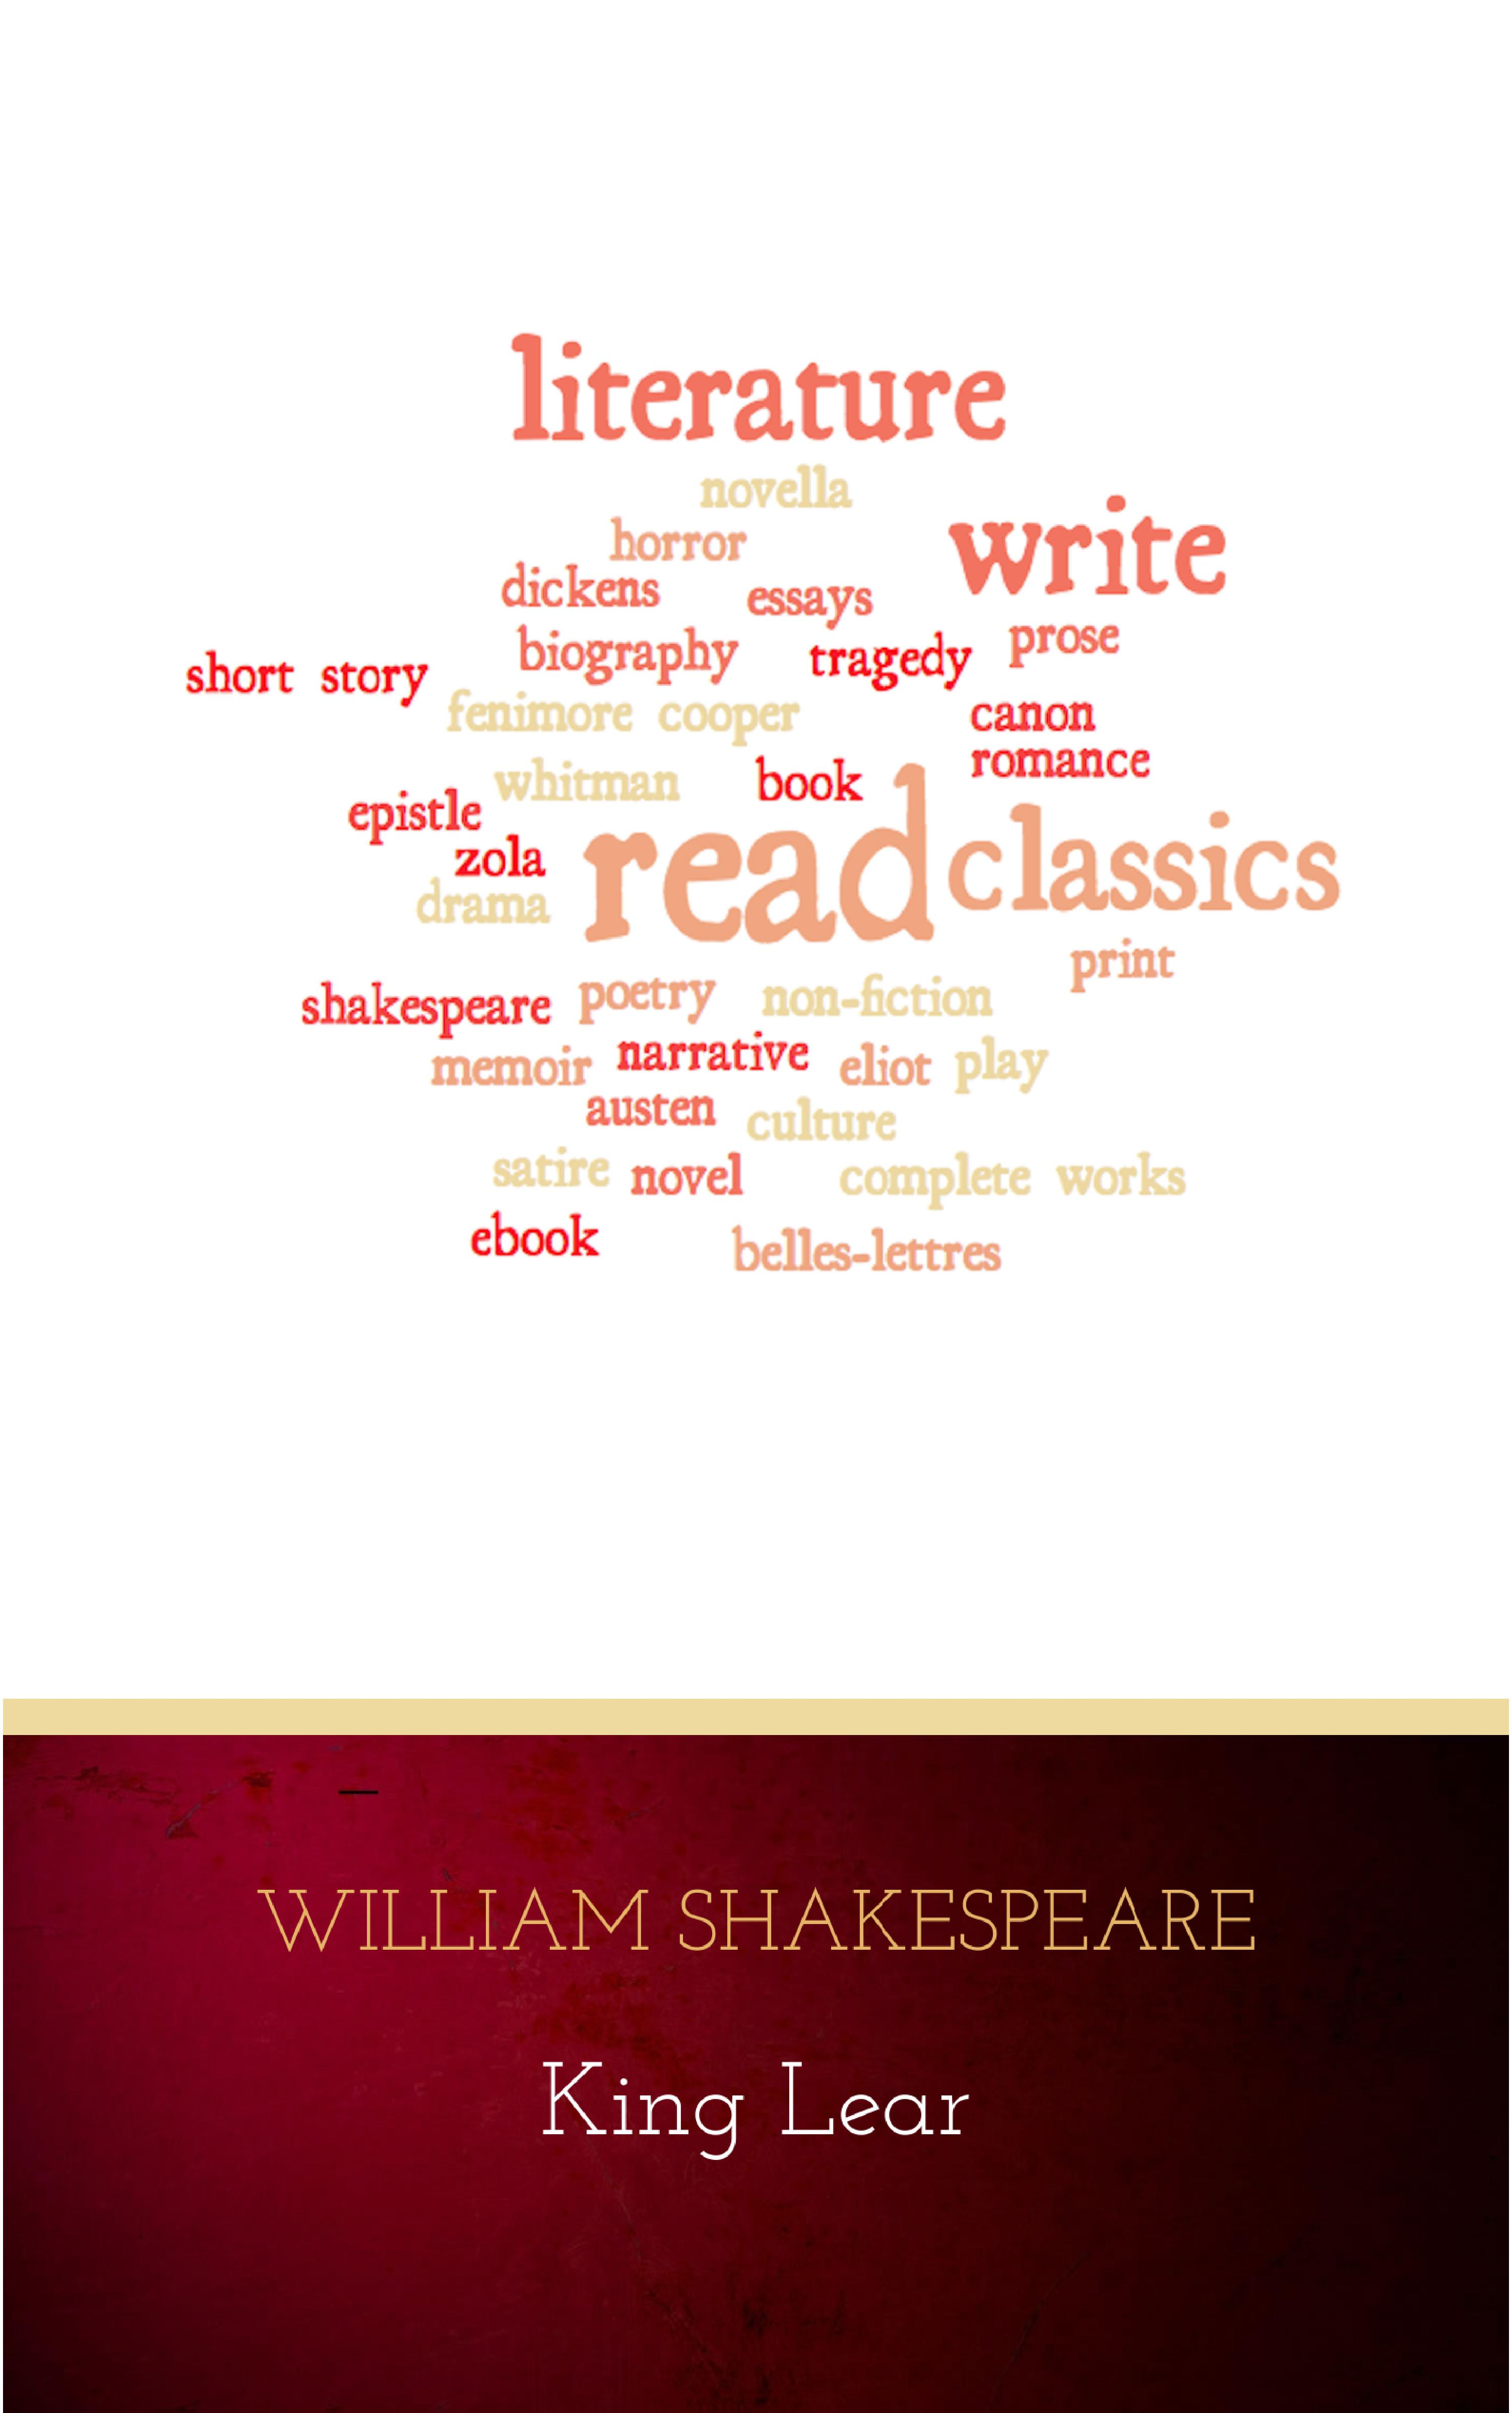 William Shakespeare King Lear king lear classroom questions